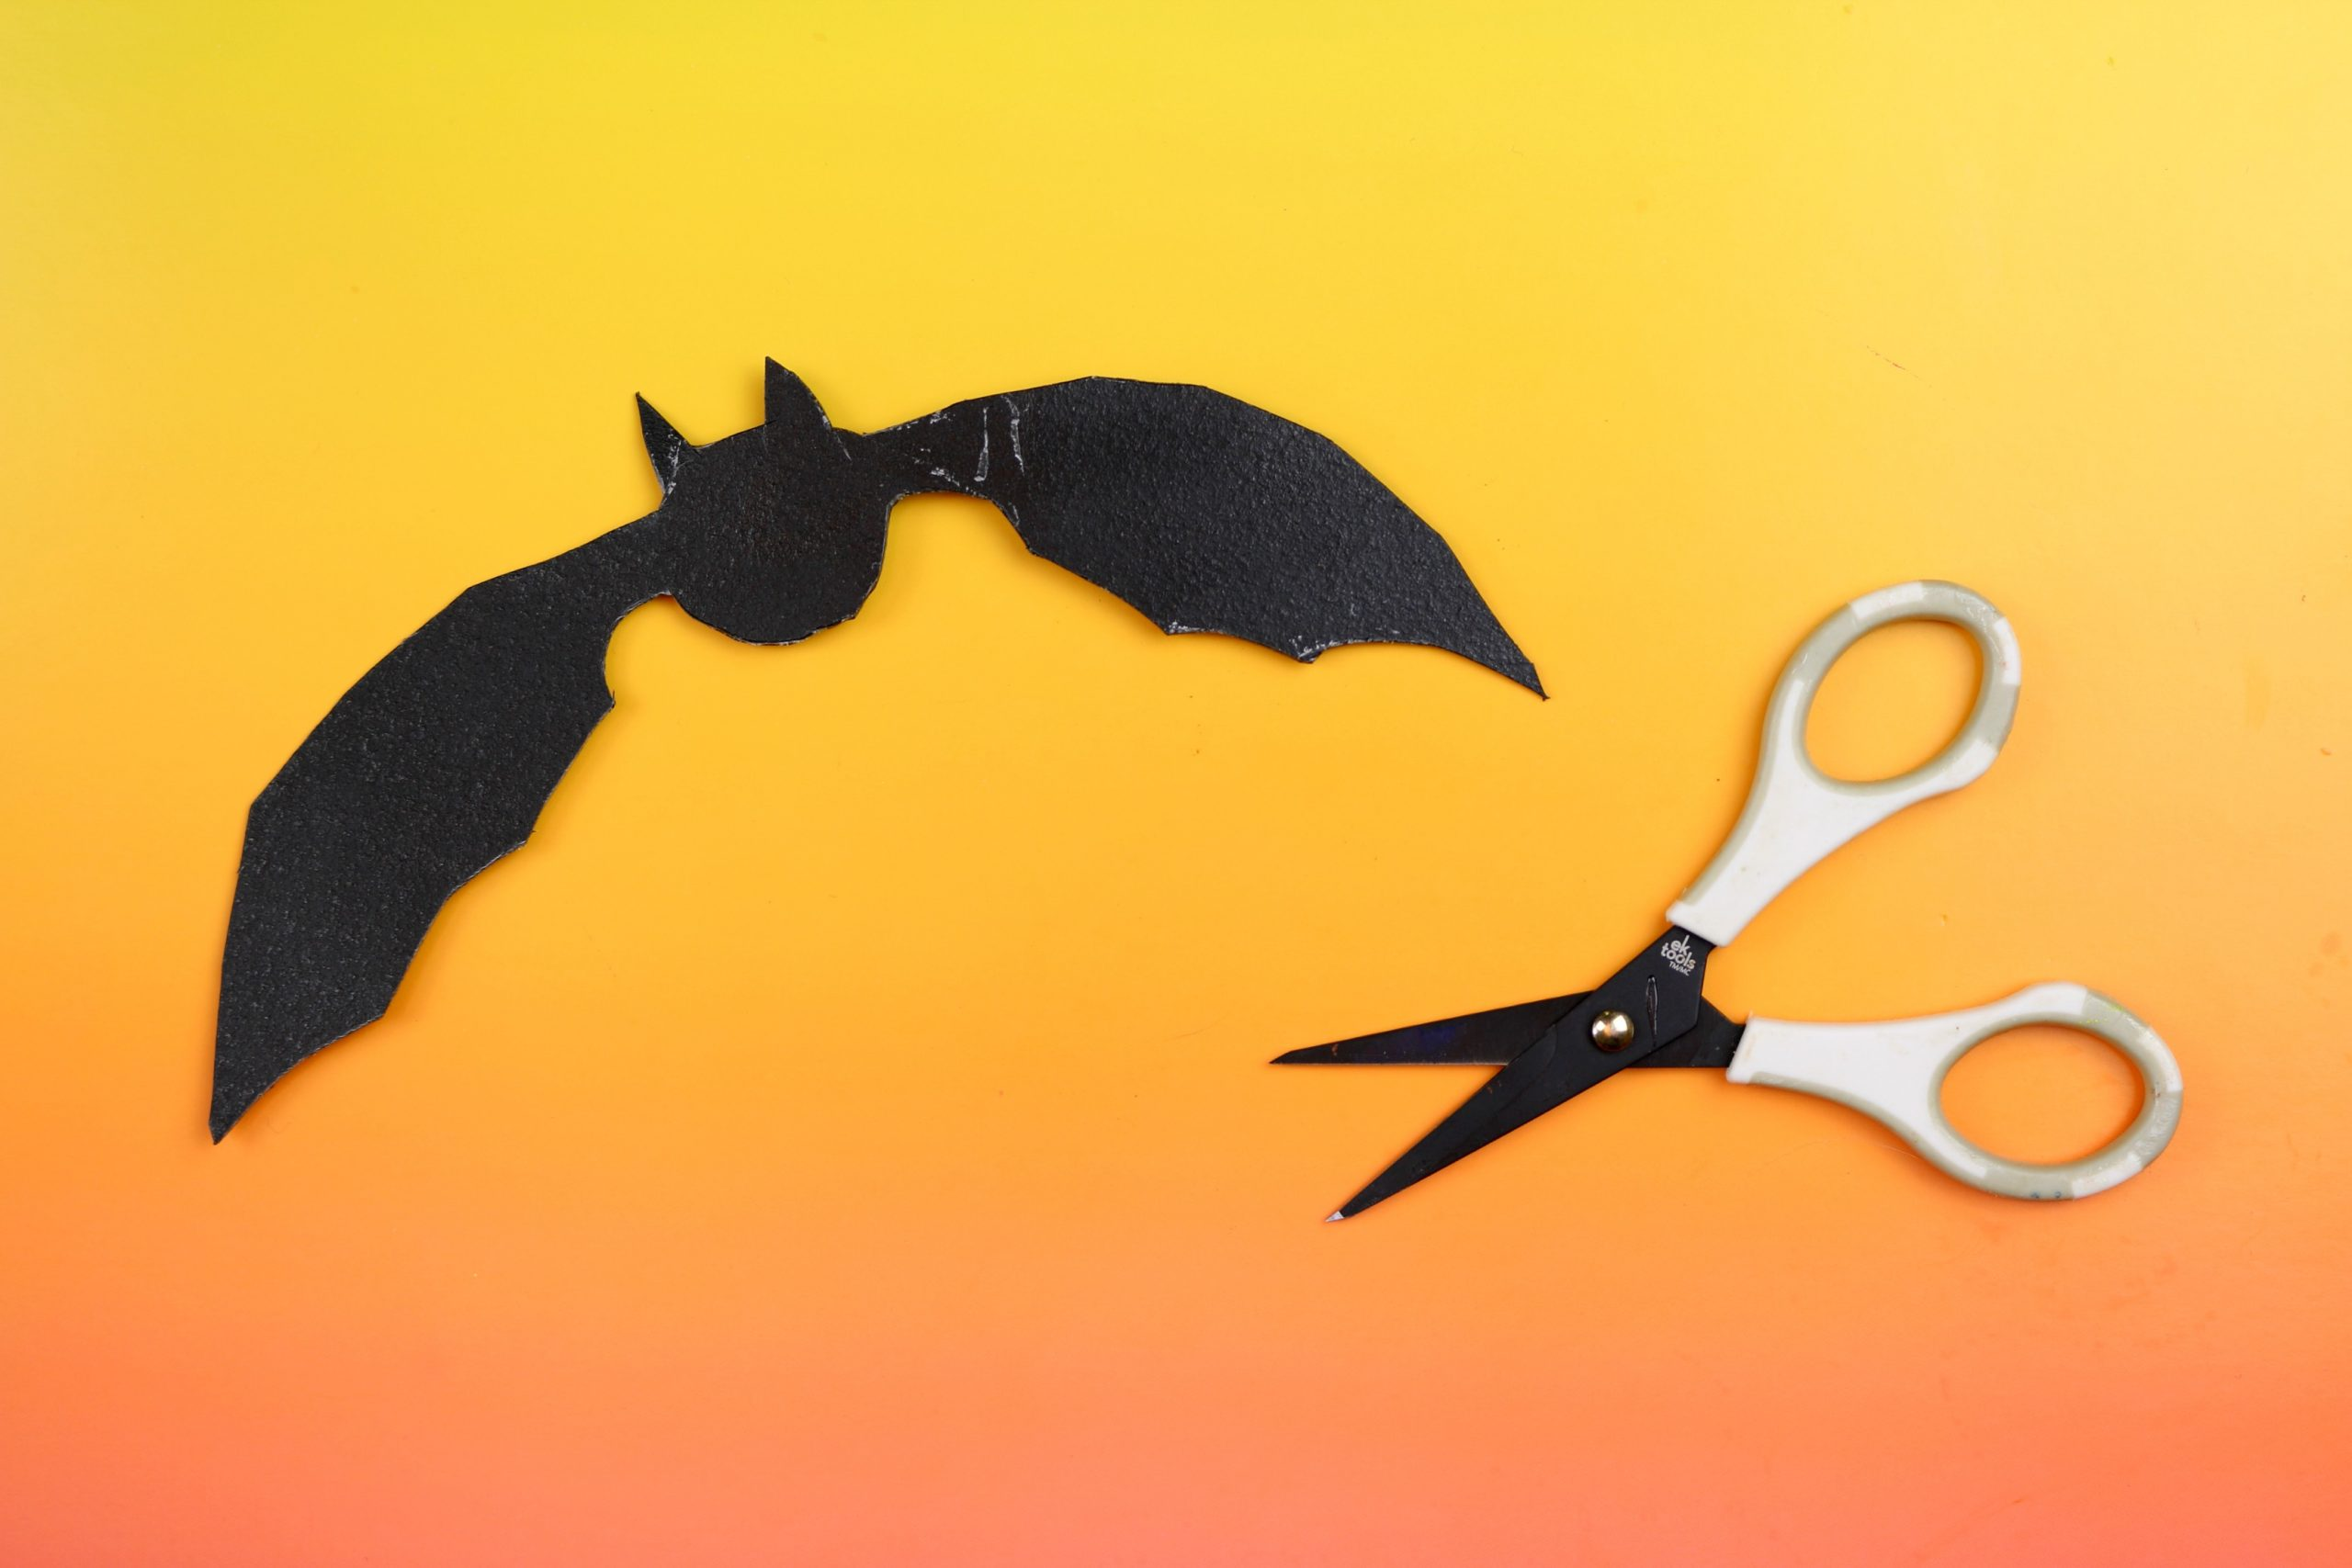 black bat shape cut out of worlba plastic and scissors